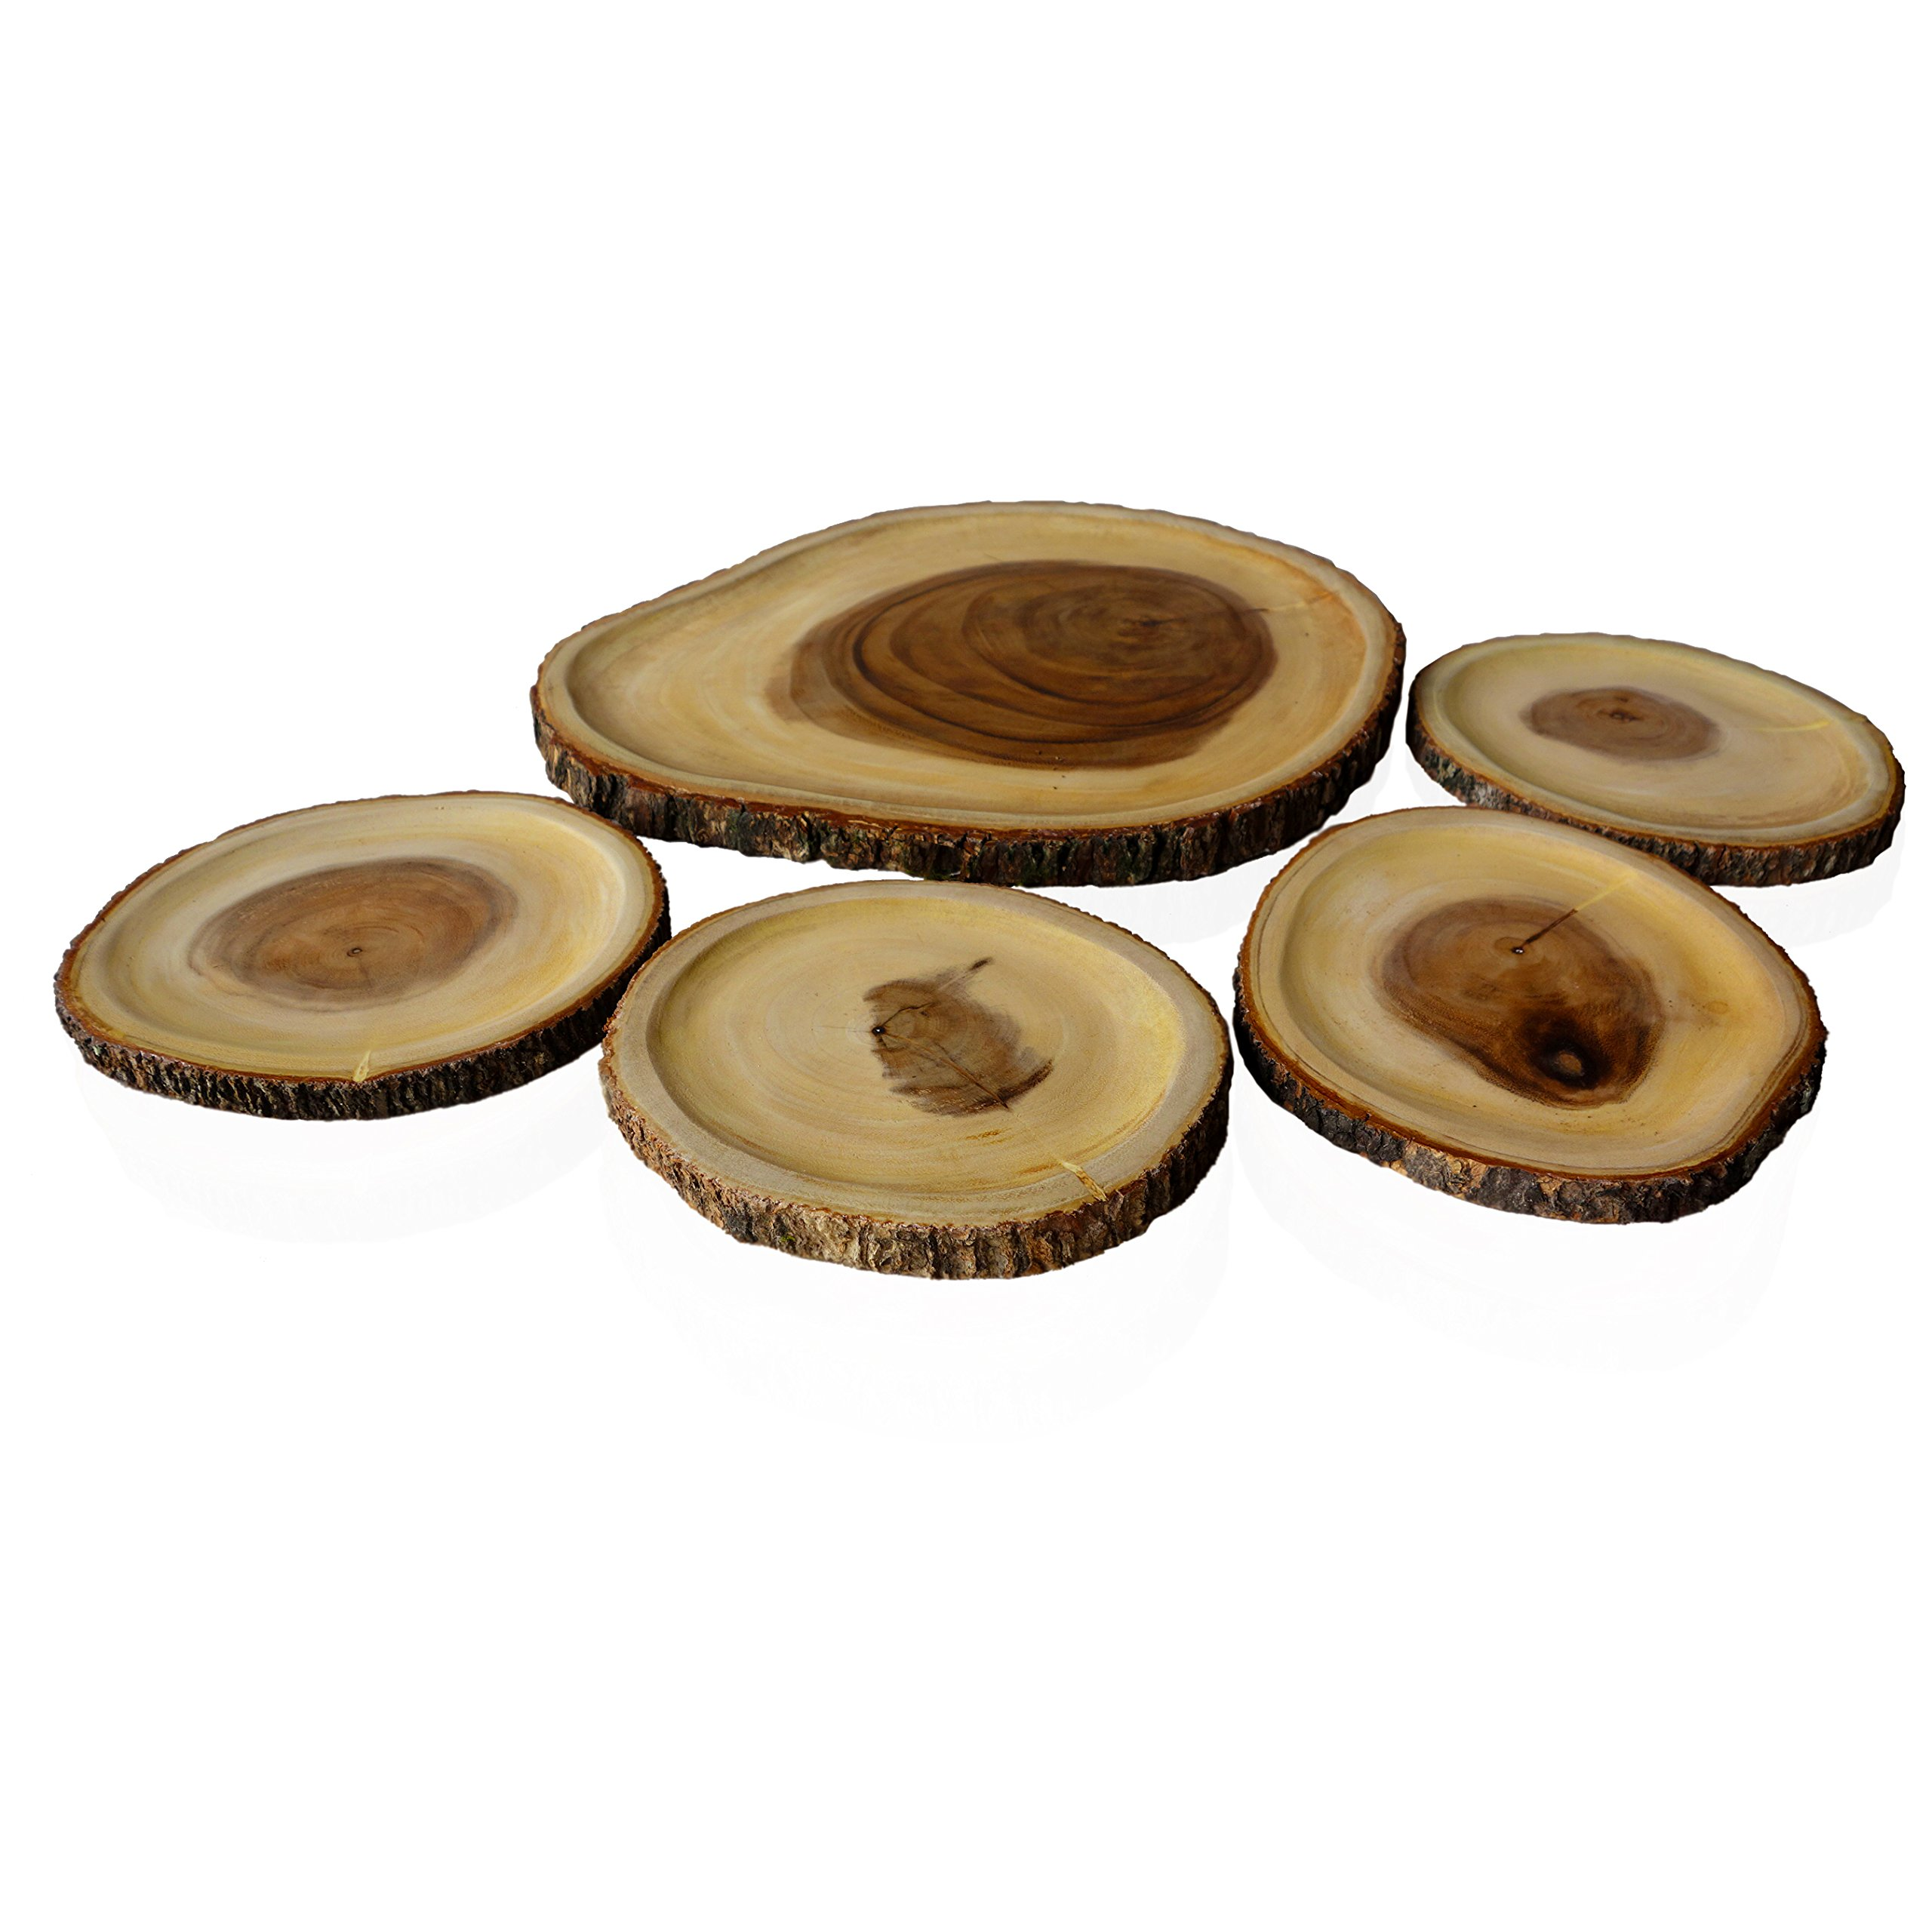 roro Hand-Crafted Reversible Appetizer Set, End-Grain Sustainable Wood, 5 Piece